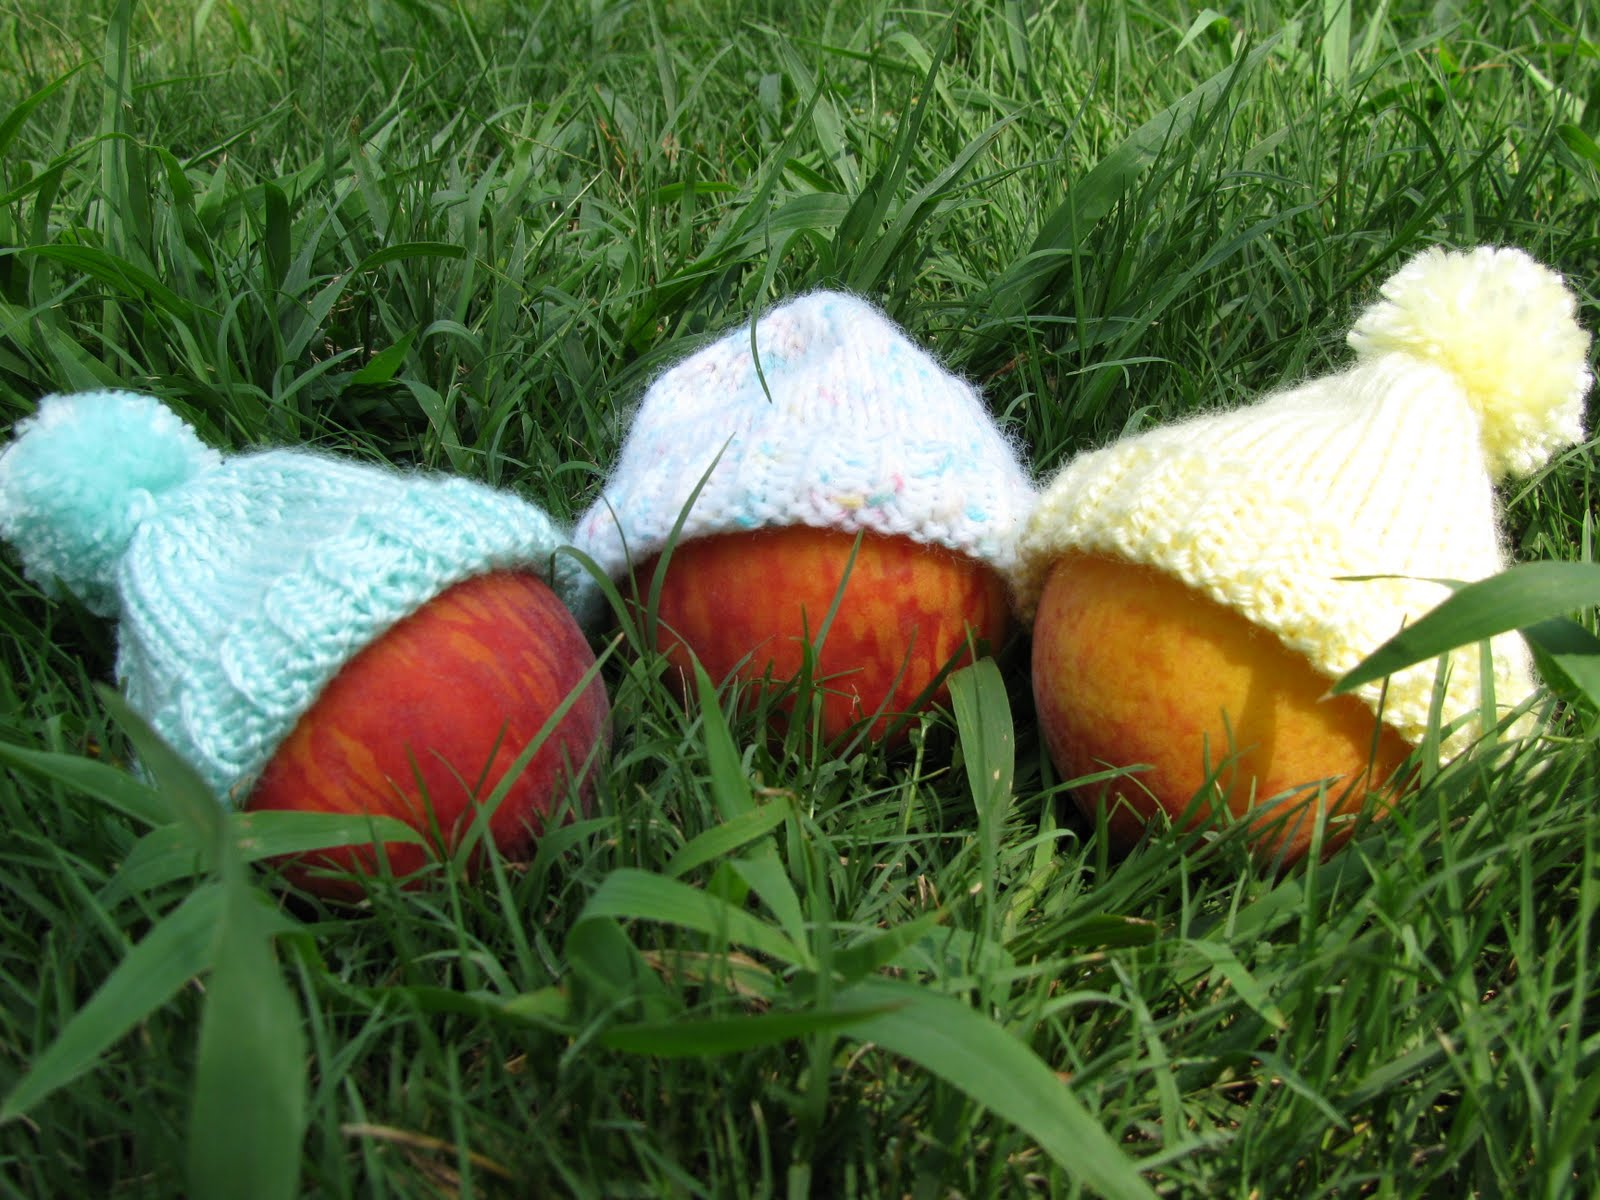 Knitting For Charity Premature Babies : Cedar hill farm company ideal preemie hat pattern for